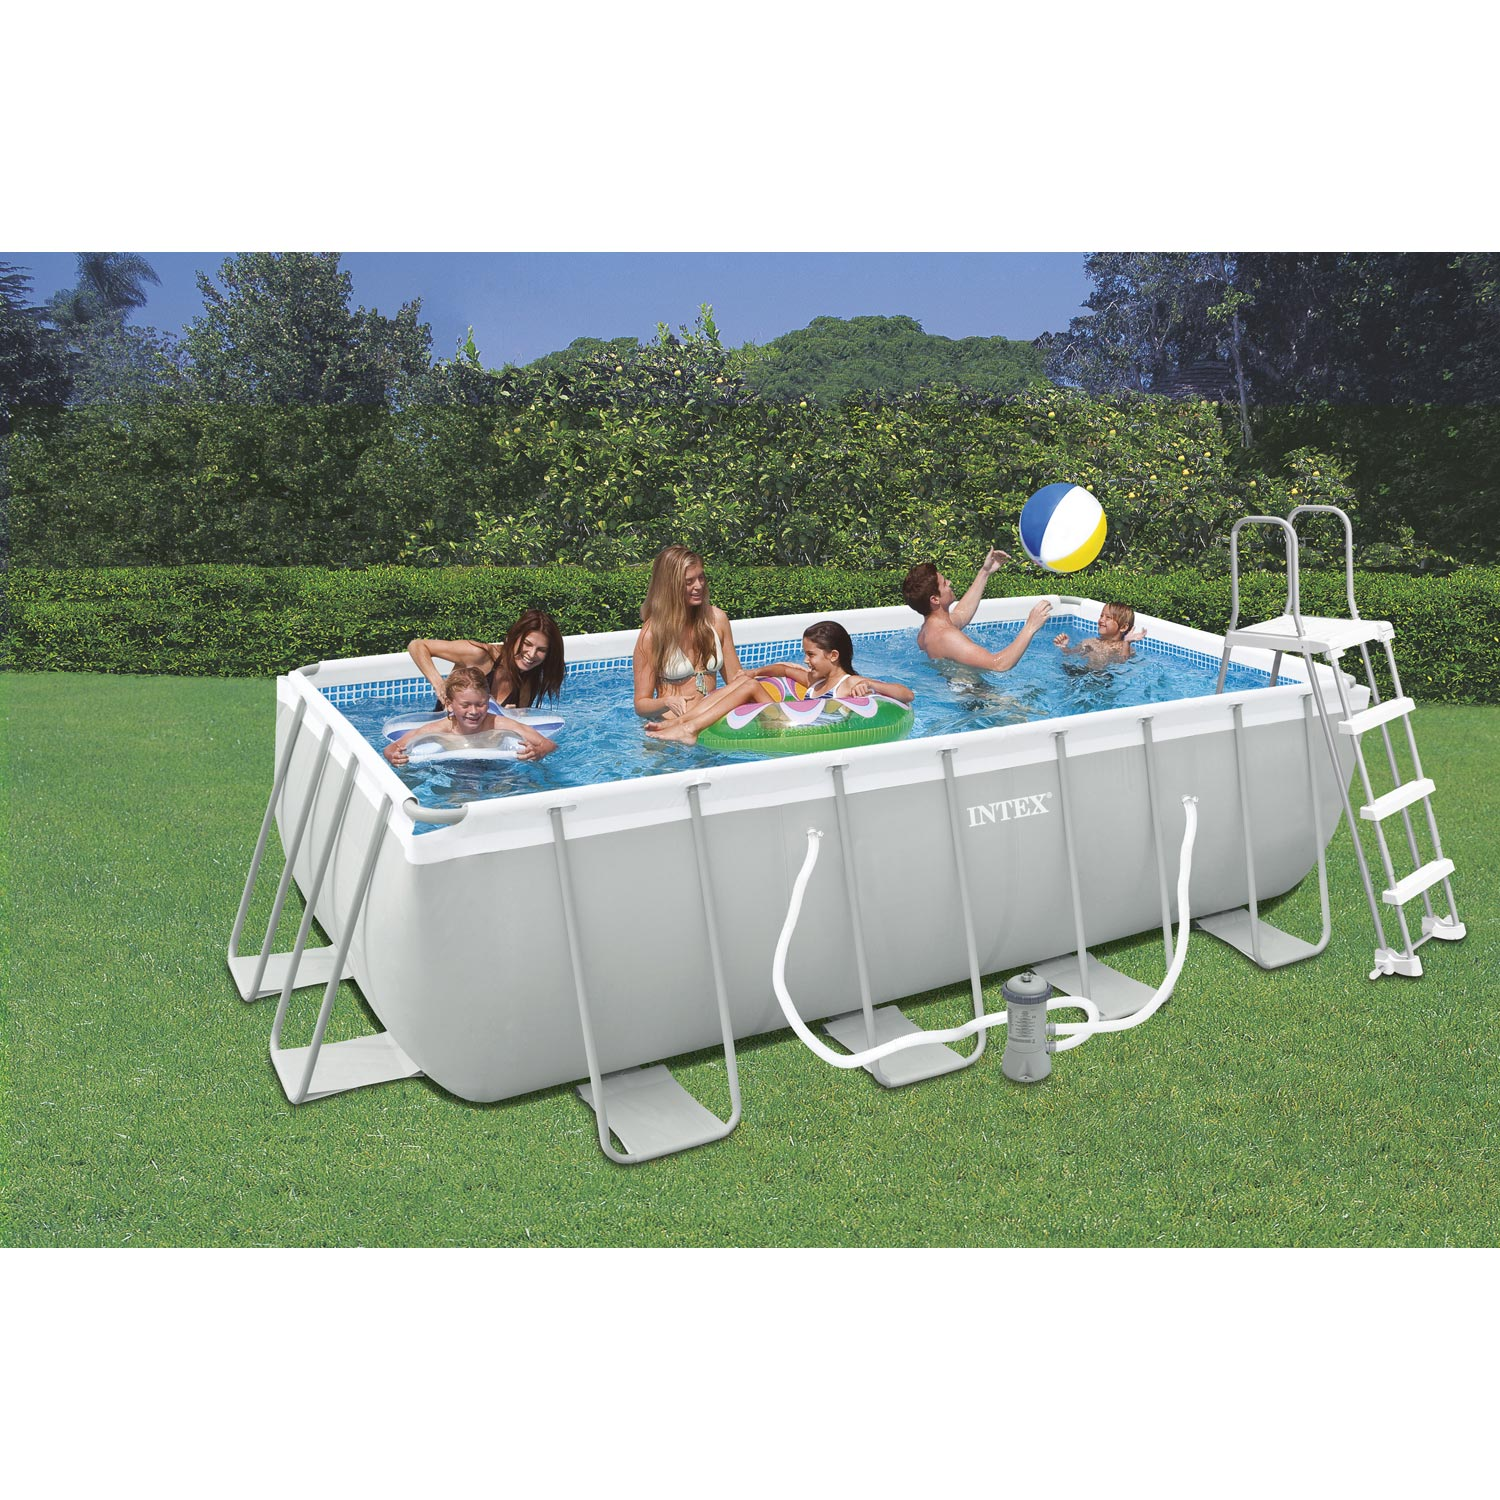 Piscine hors sol tubulaire s rie sp ciale intex for Piscine tubulaire intex rectangulaire